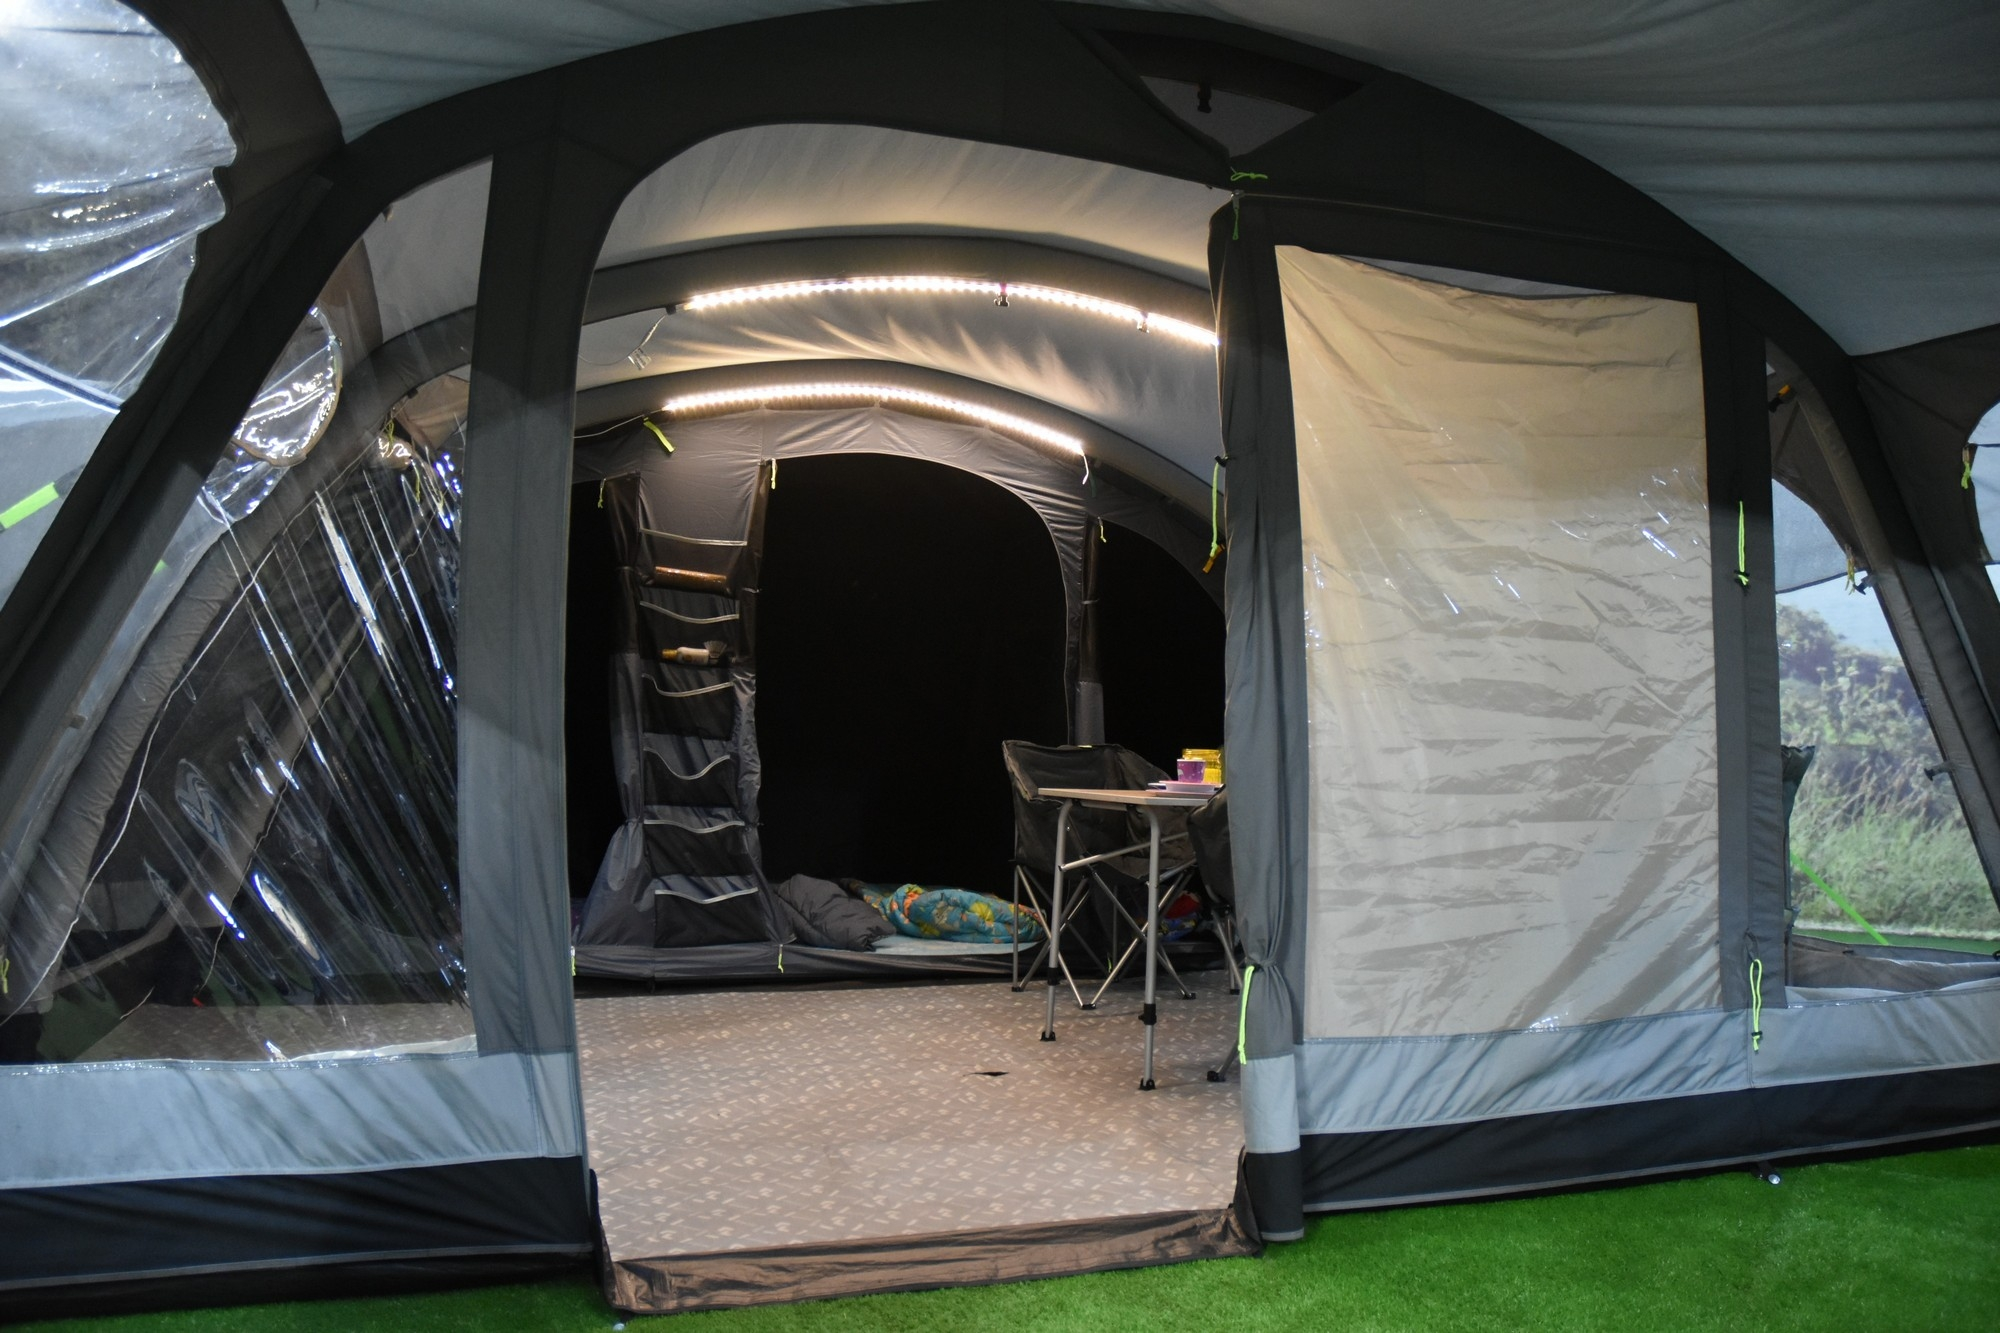 Just 20 minutes from mudgee, is a magical place to unwind and recharge. Kampa Dometic Studland 6 Classic AIR Tent - 2020 Model